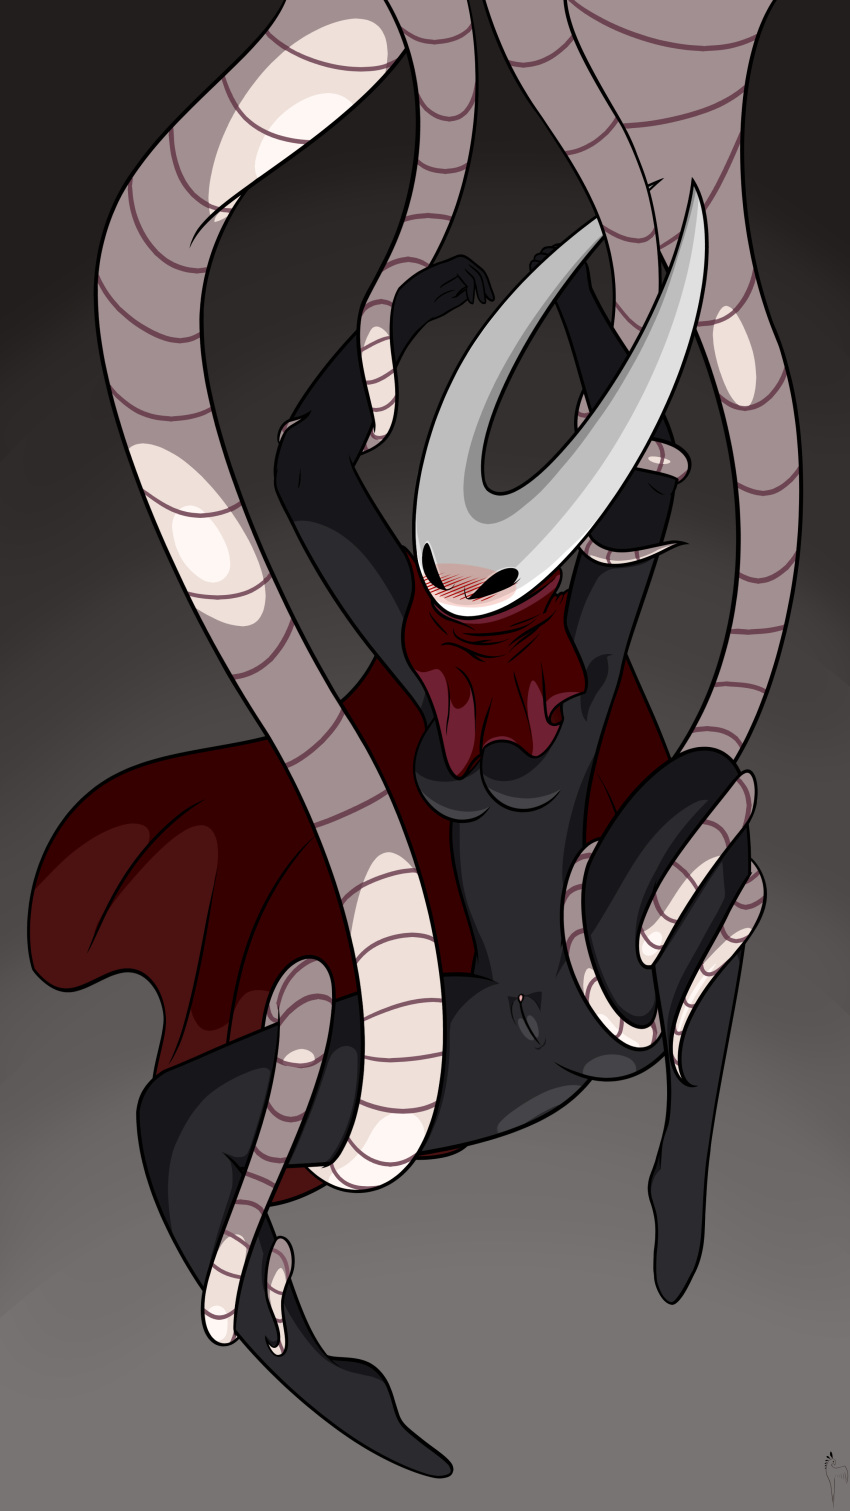 nosk to to hollow knight get how Sadie steven universe leg hair